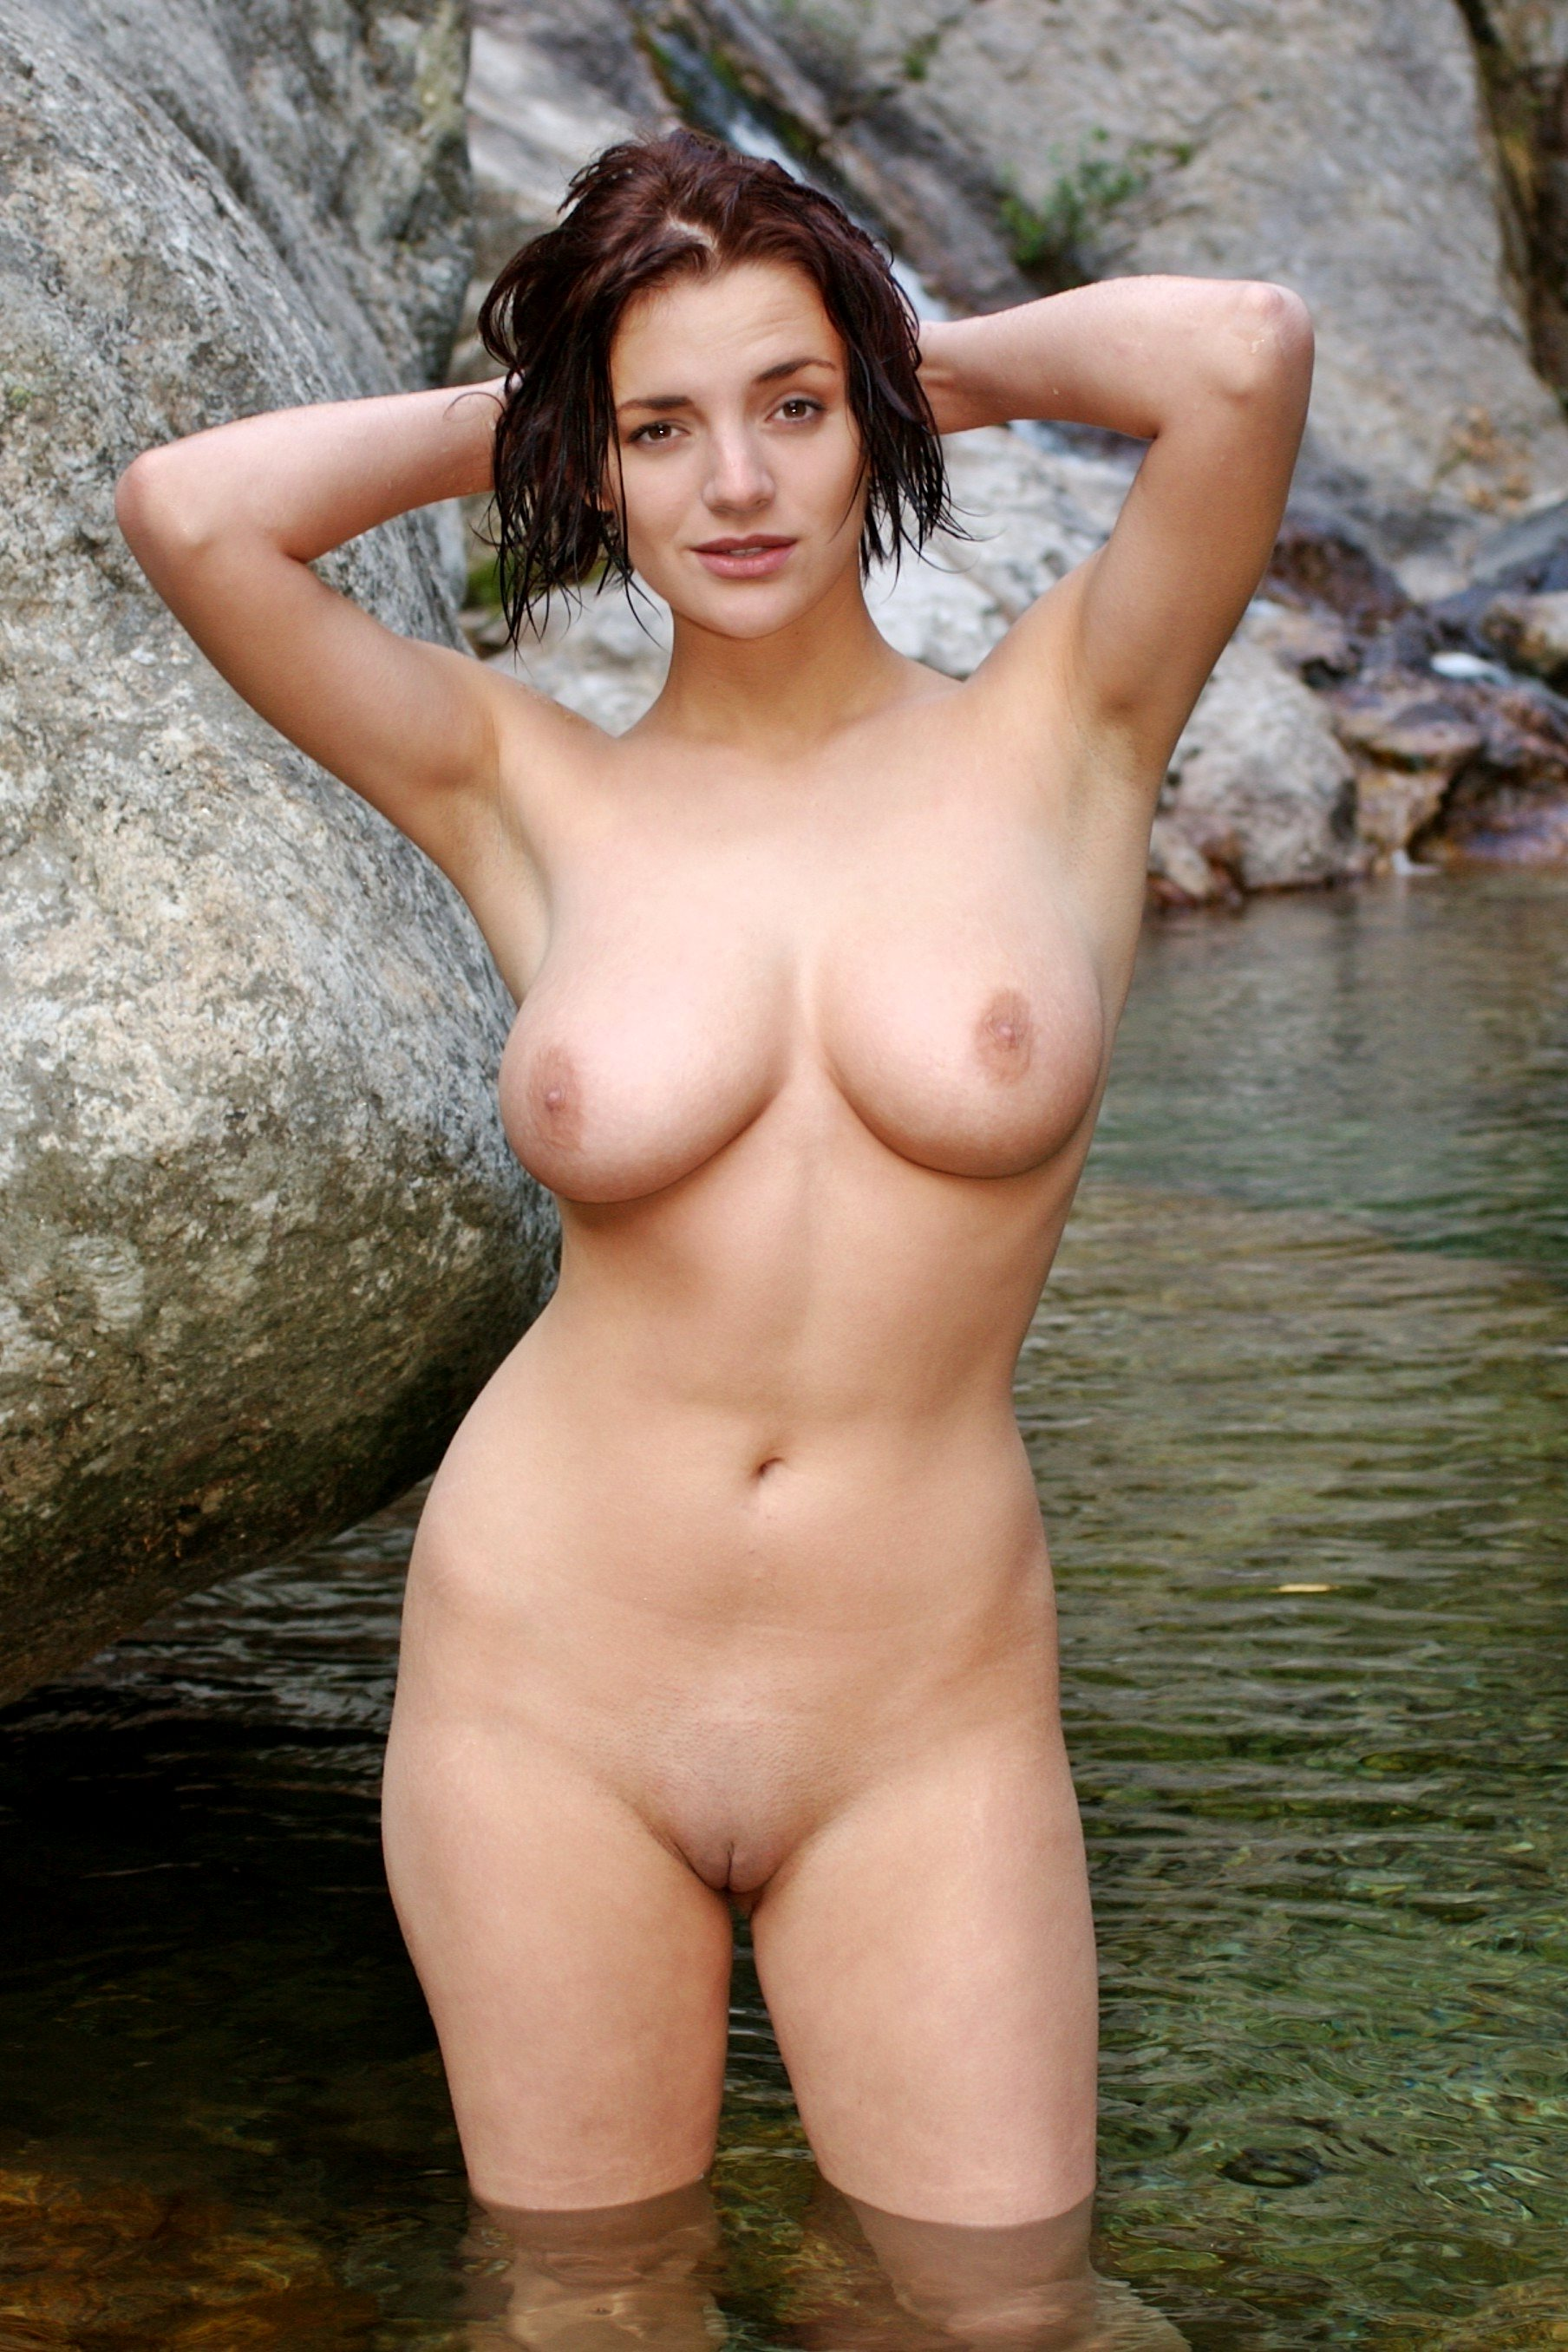 naked amateur women tumblr